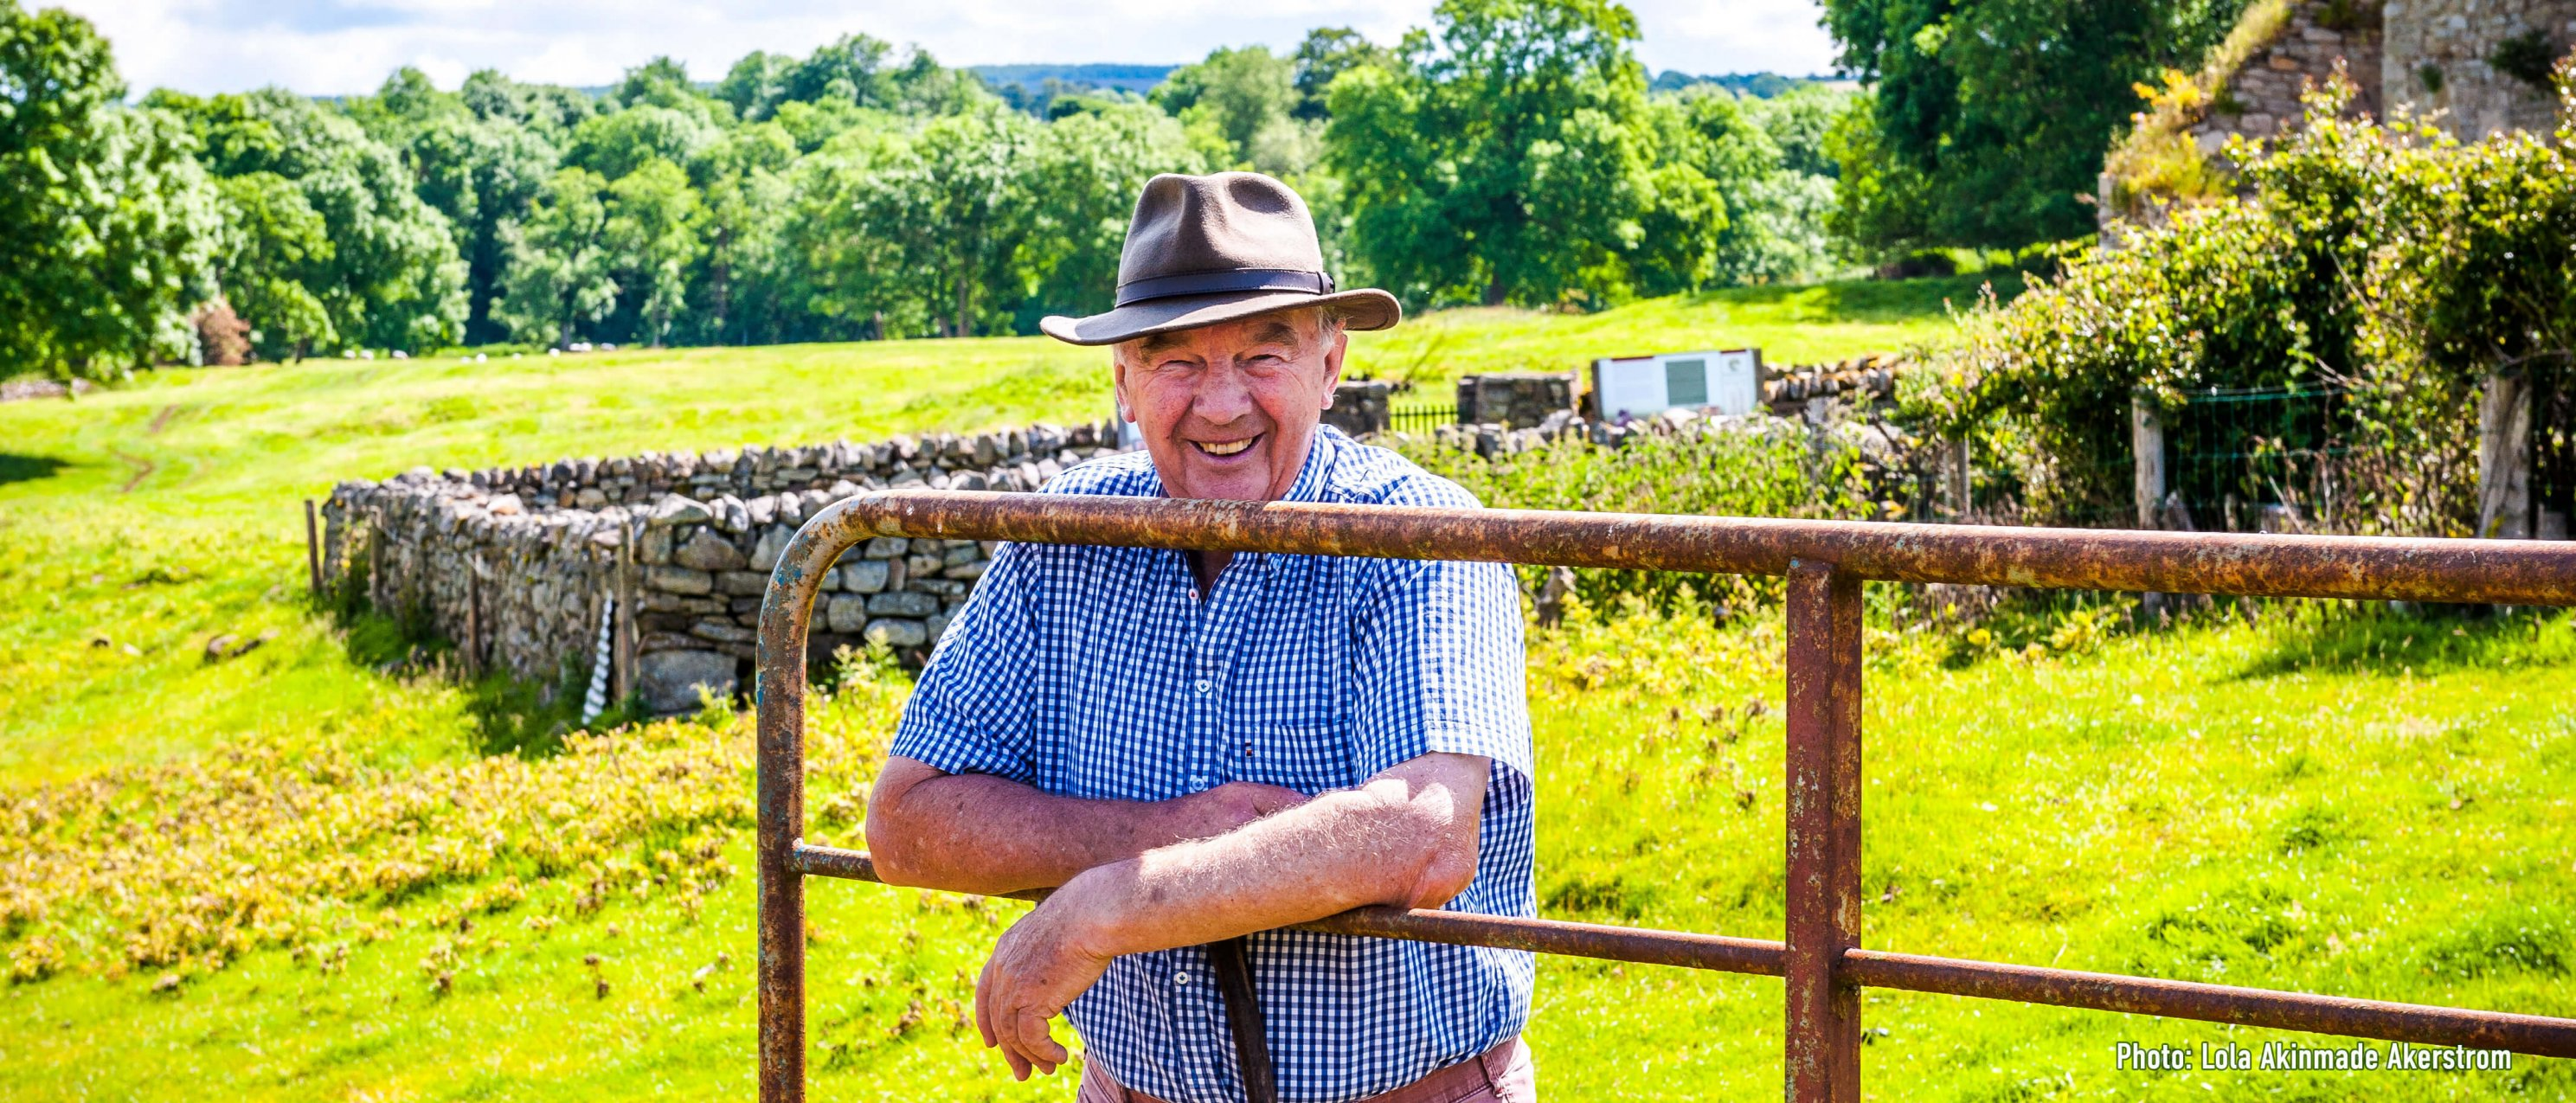 Smiling Irish male middle aged tour guide with a hat leaning on gate at Jerpoint in Kilkenny, Ireland